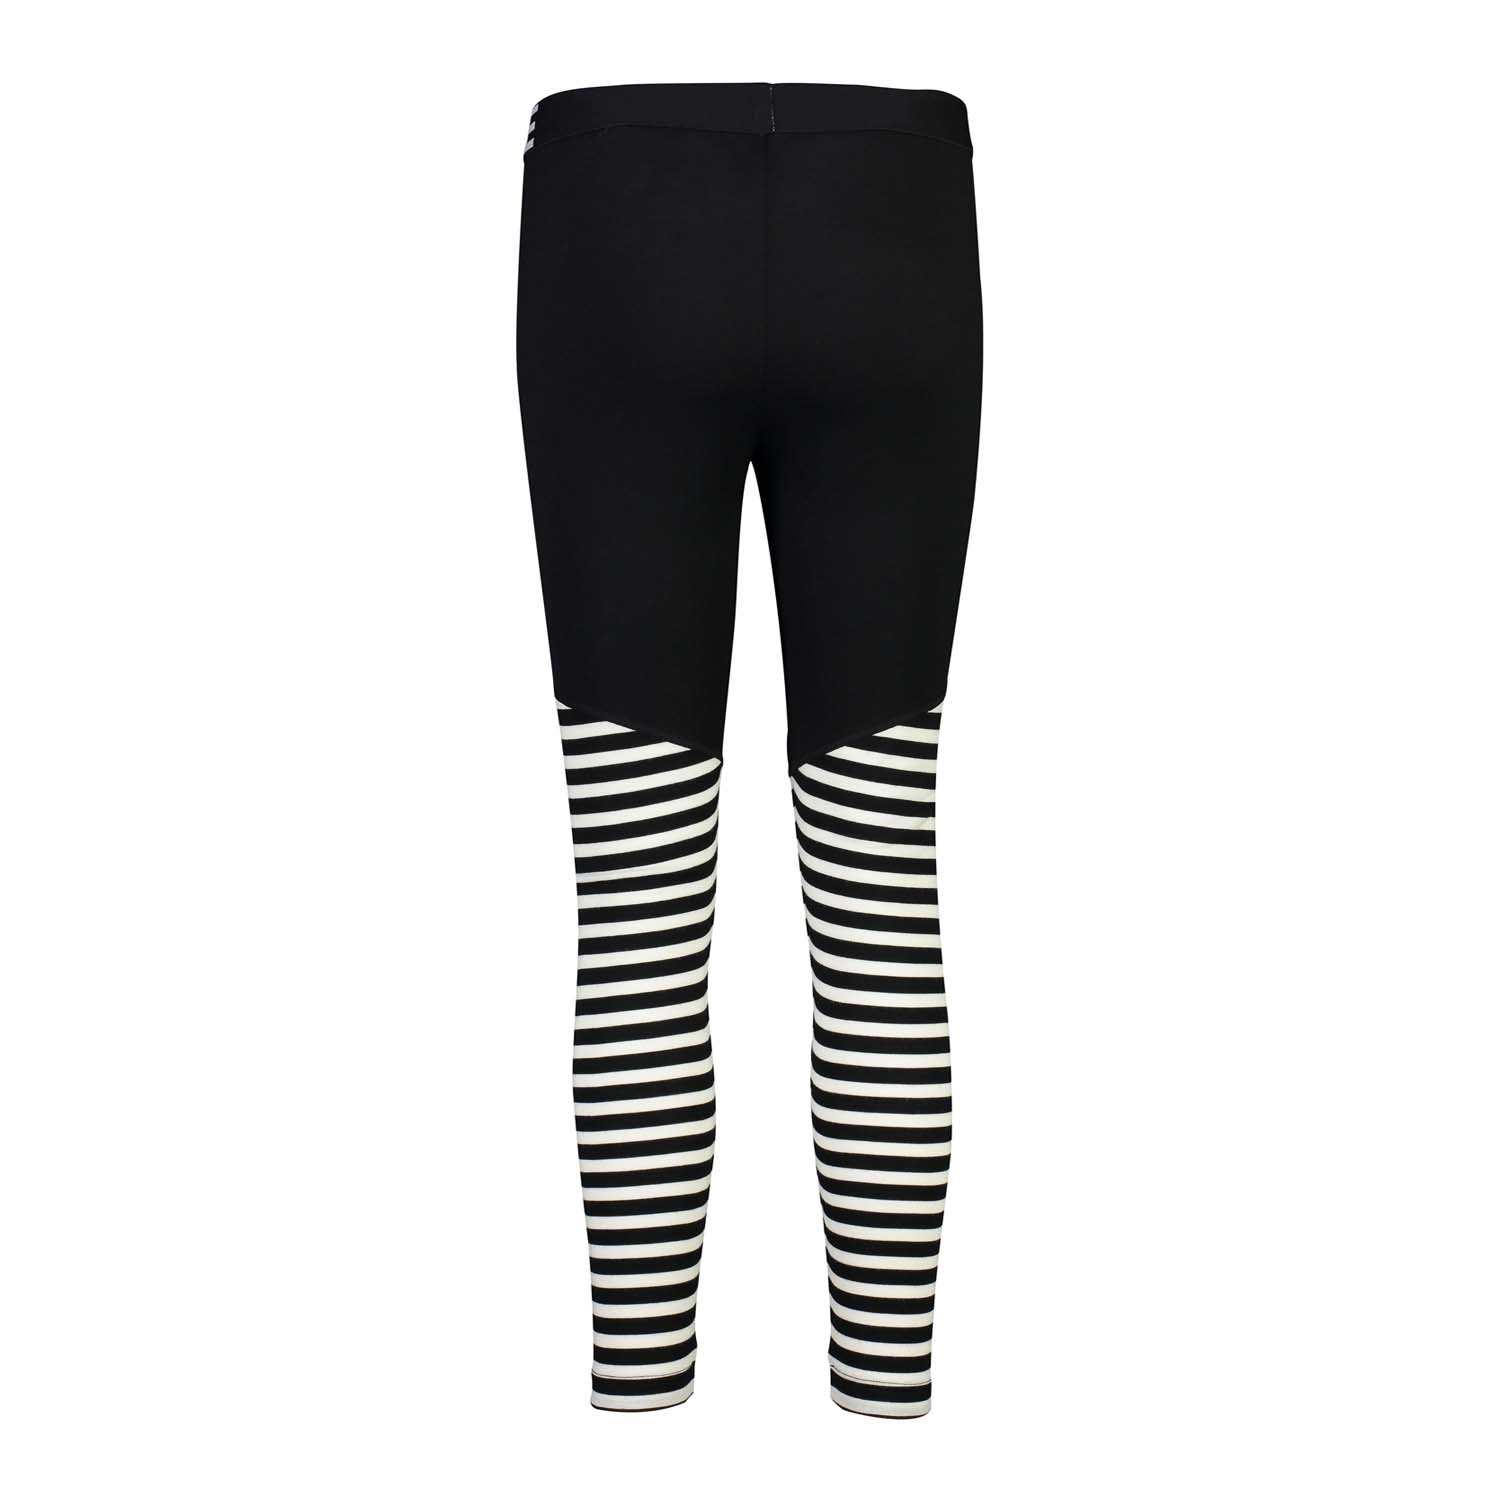 Mons Royale Christy Legging Black/Thick Stripe 2020